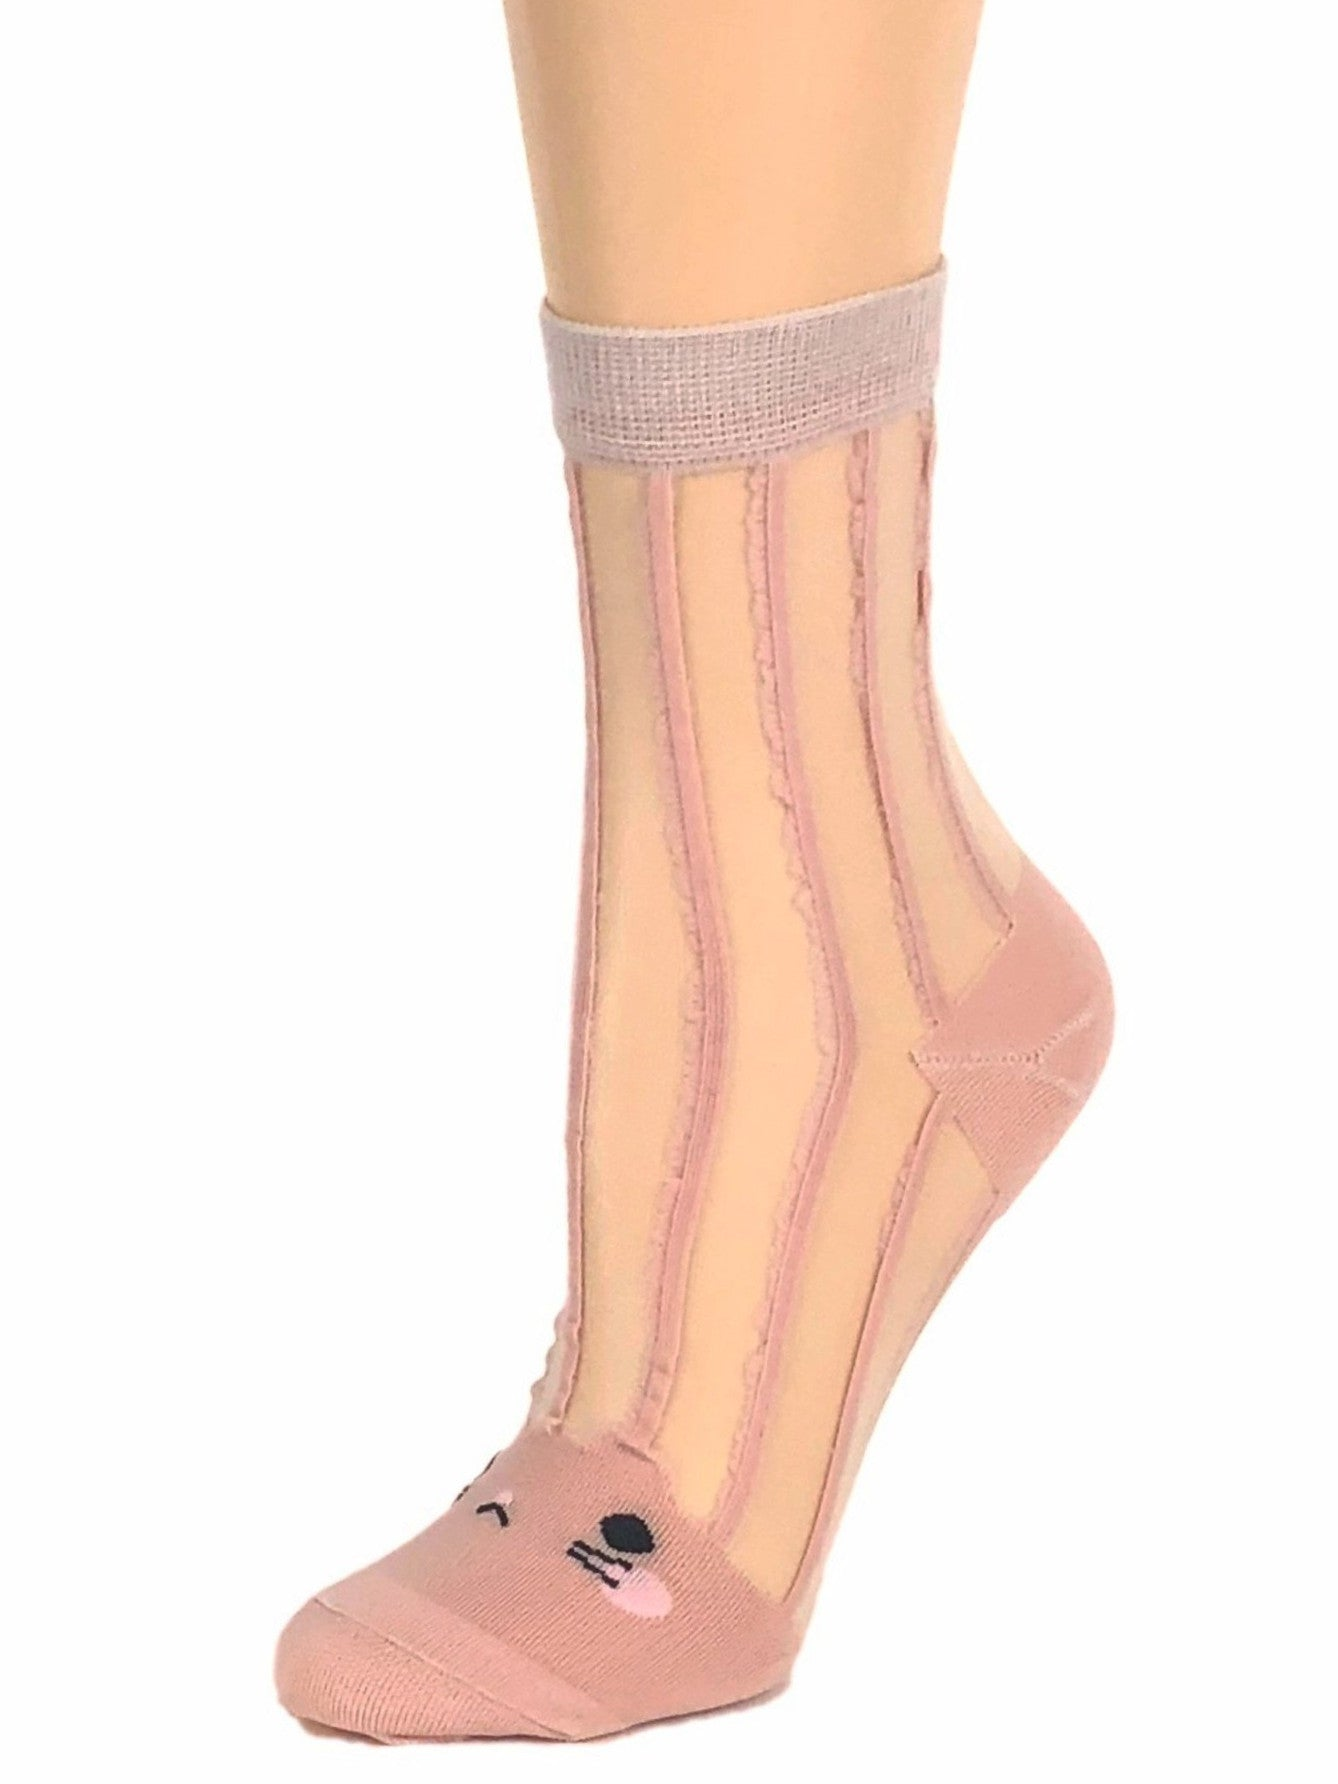 Kitty Tea Pink Sheer Socks-Global Trendz Fashion®